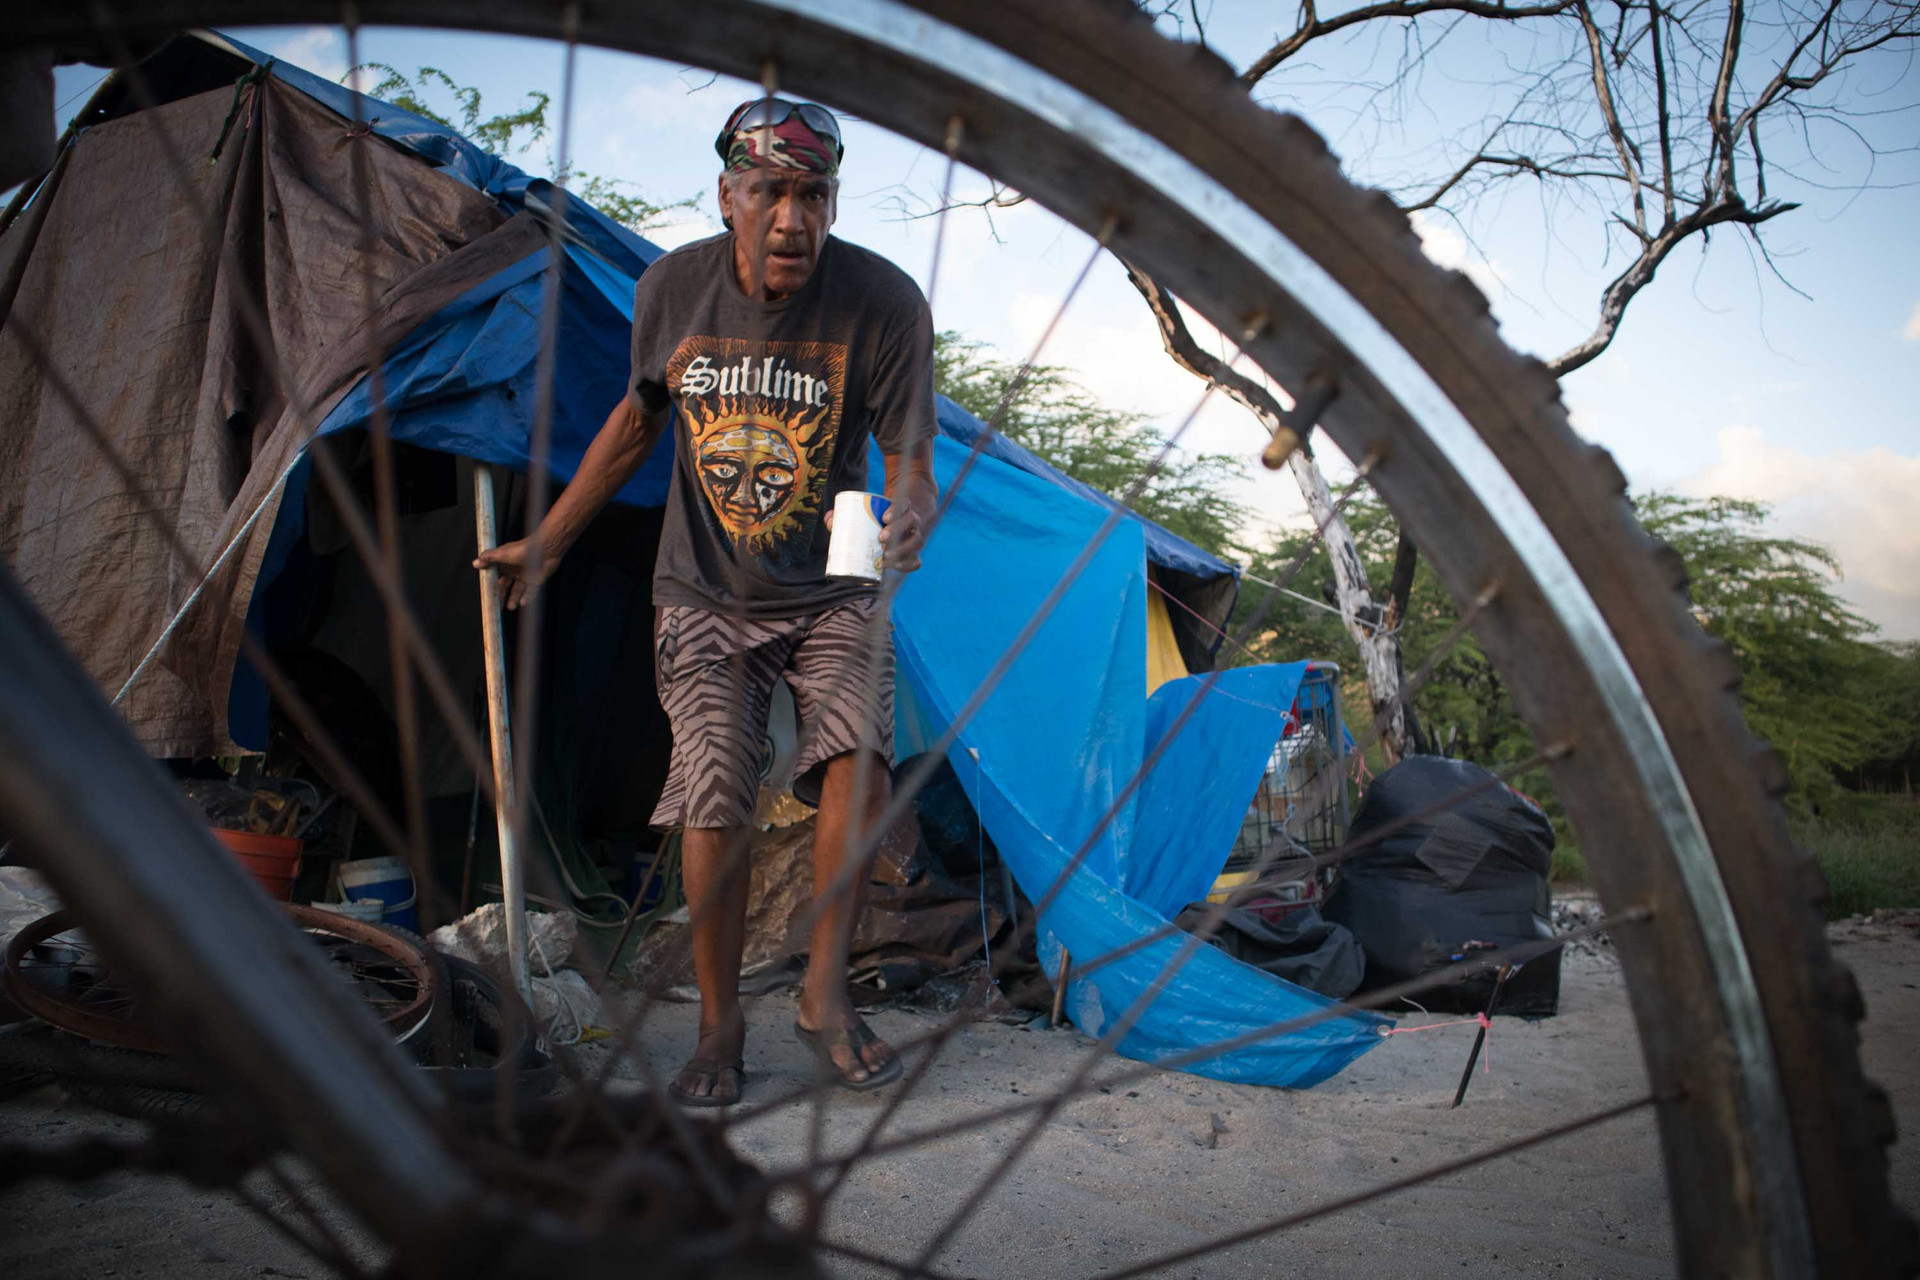 Jeffrey became homeless after he moved to Hawaii but Twinkle Borge, leader of Pu'uhonua O Wai'anae made an arrangement for him at oceanside of the village which he can finally call 'home.'